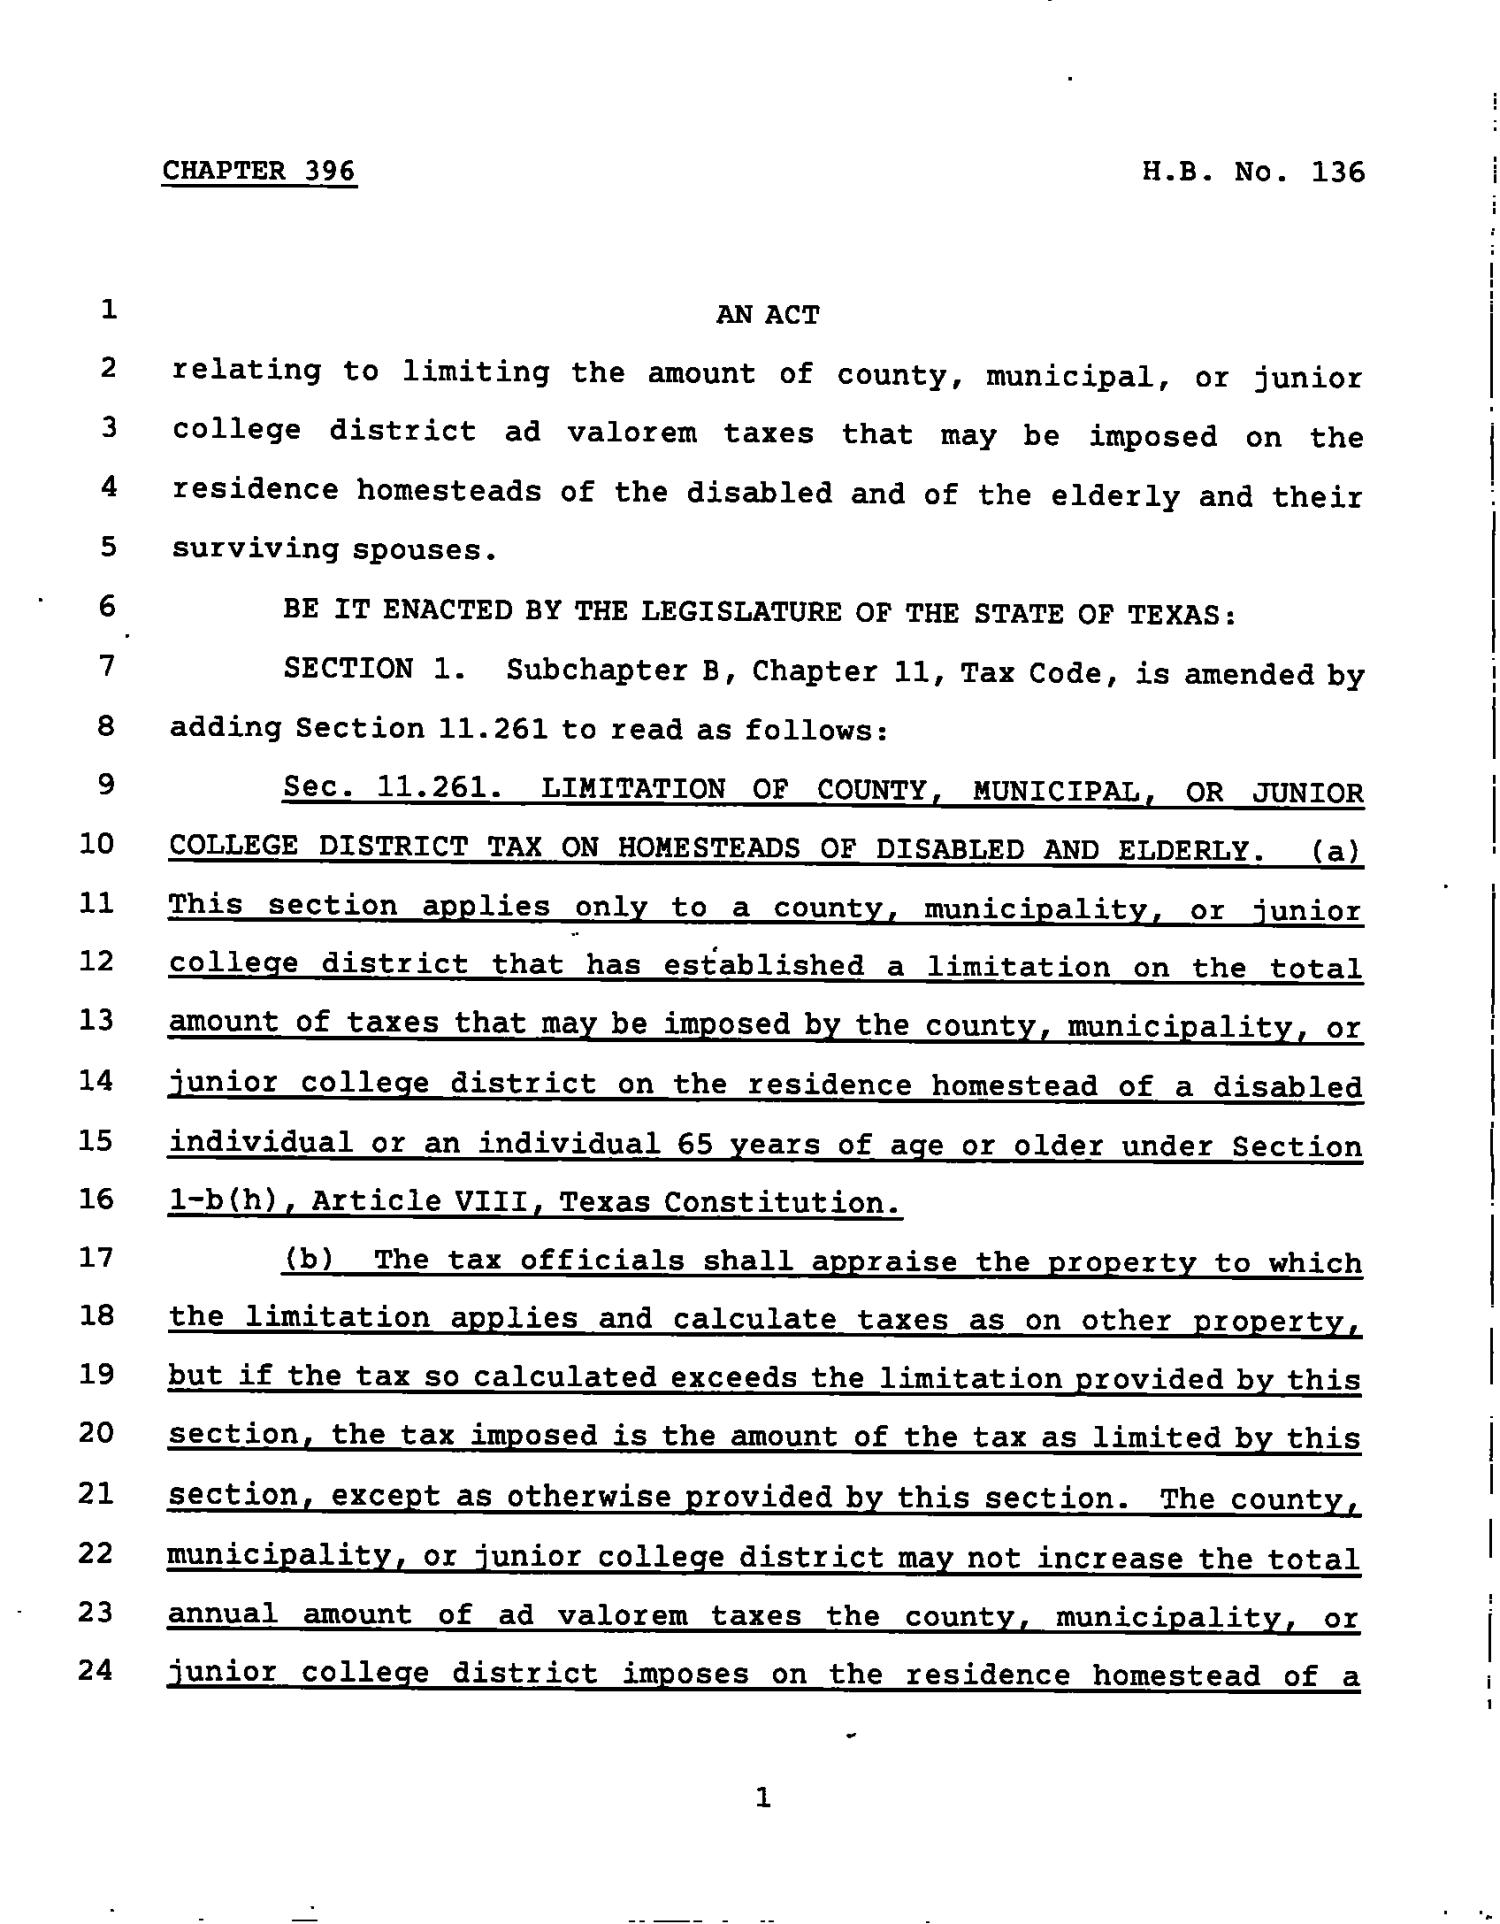 78th Texas Legislature, Regular Session, House Bill 136, Chapter 396                                                                                                      [Sequence #]: 1 of 11